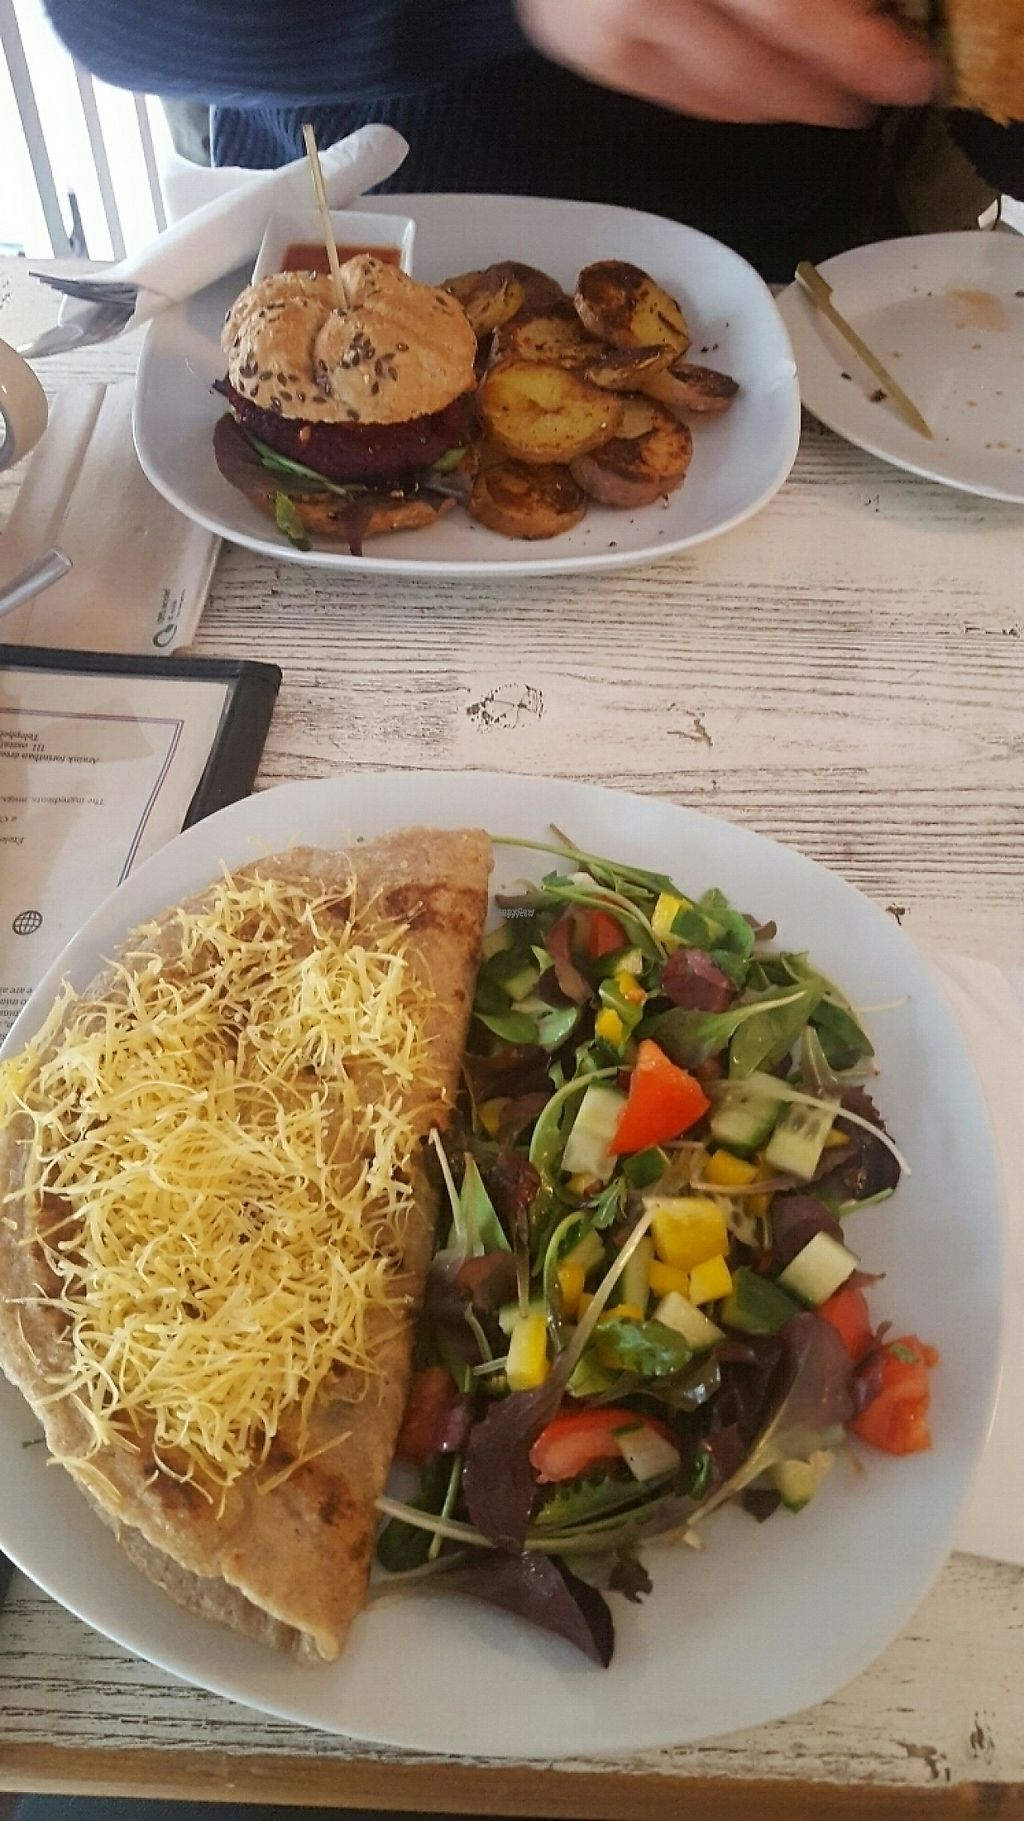 "Photo of CLOSED: CsendesM Vegan Bistro  by <a href=""/members/profile/RabiaMohammadi"">RabiaMohammadi</a> <br/>Burger with baked patatoes and buckwheat crêpe with spinach and cheese with salad   <br/> January 3, 2017  - <a href='/contact/abuse/image/62674/207409'>Report</a>"